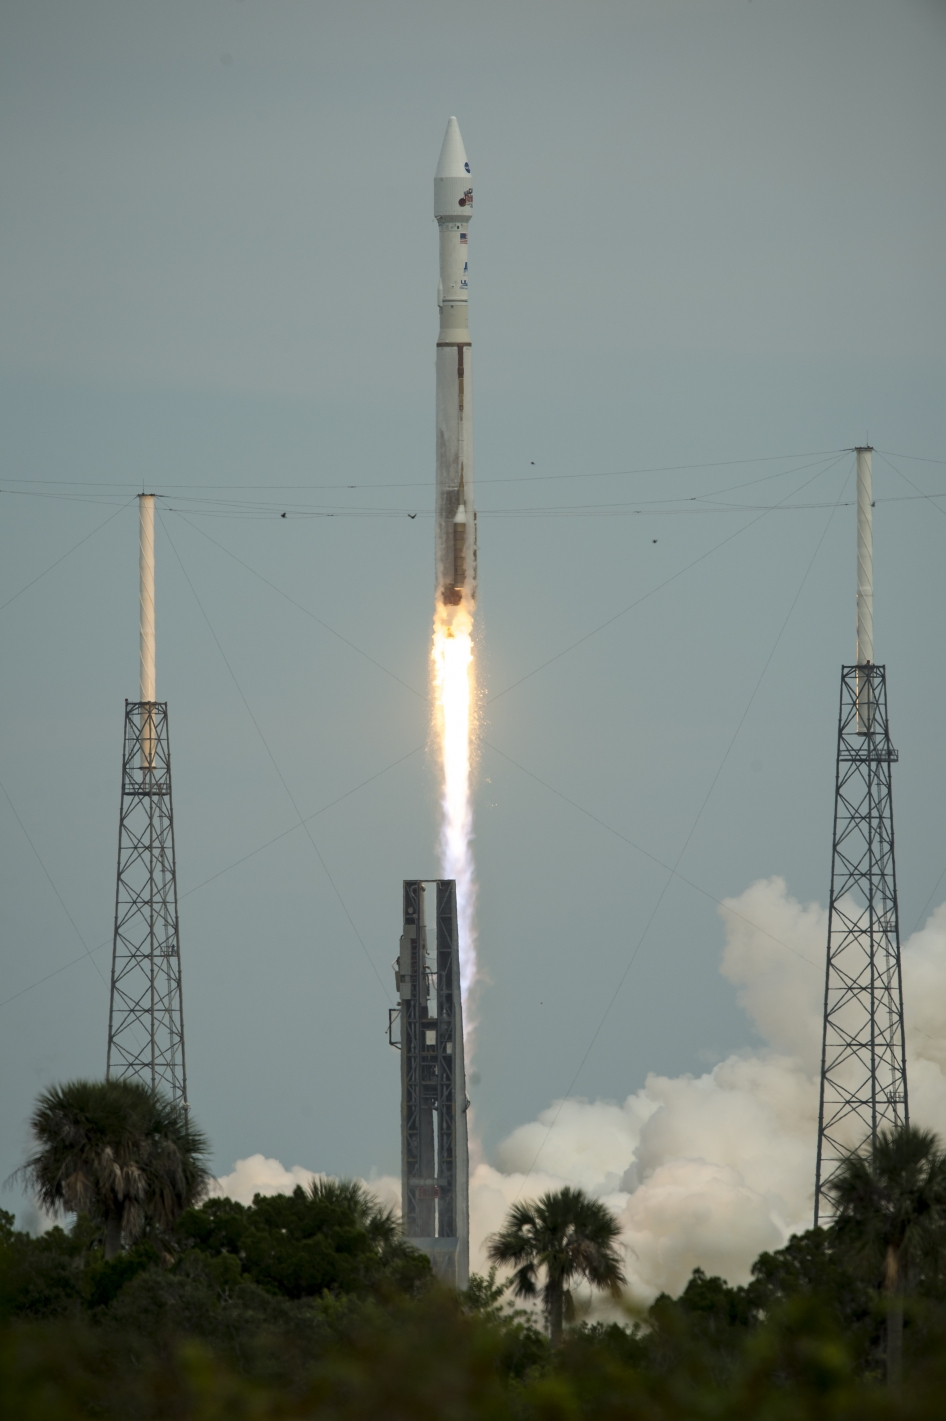 NASA's Mars Atmosphere and Volatile EvolutioN (MAVEN) spacecraft launches aboard a United Launch Alliance Atlas V from the Cape Canaveral Air Force Station Space Launch Complex 41, Monday, Nov. 18, 2013, Cape Canaveral, Florida.